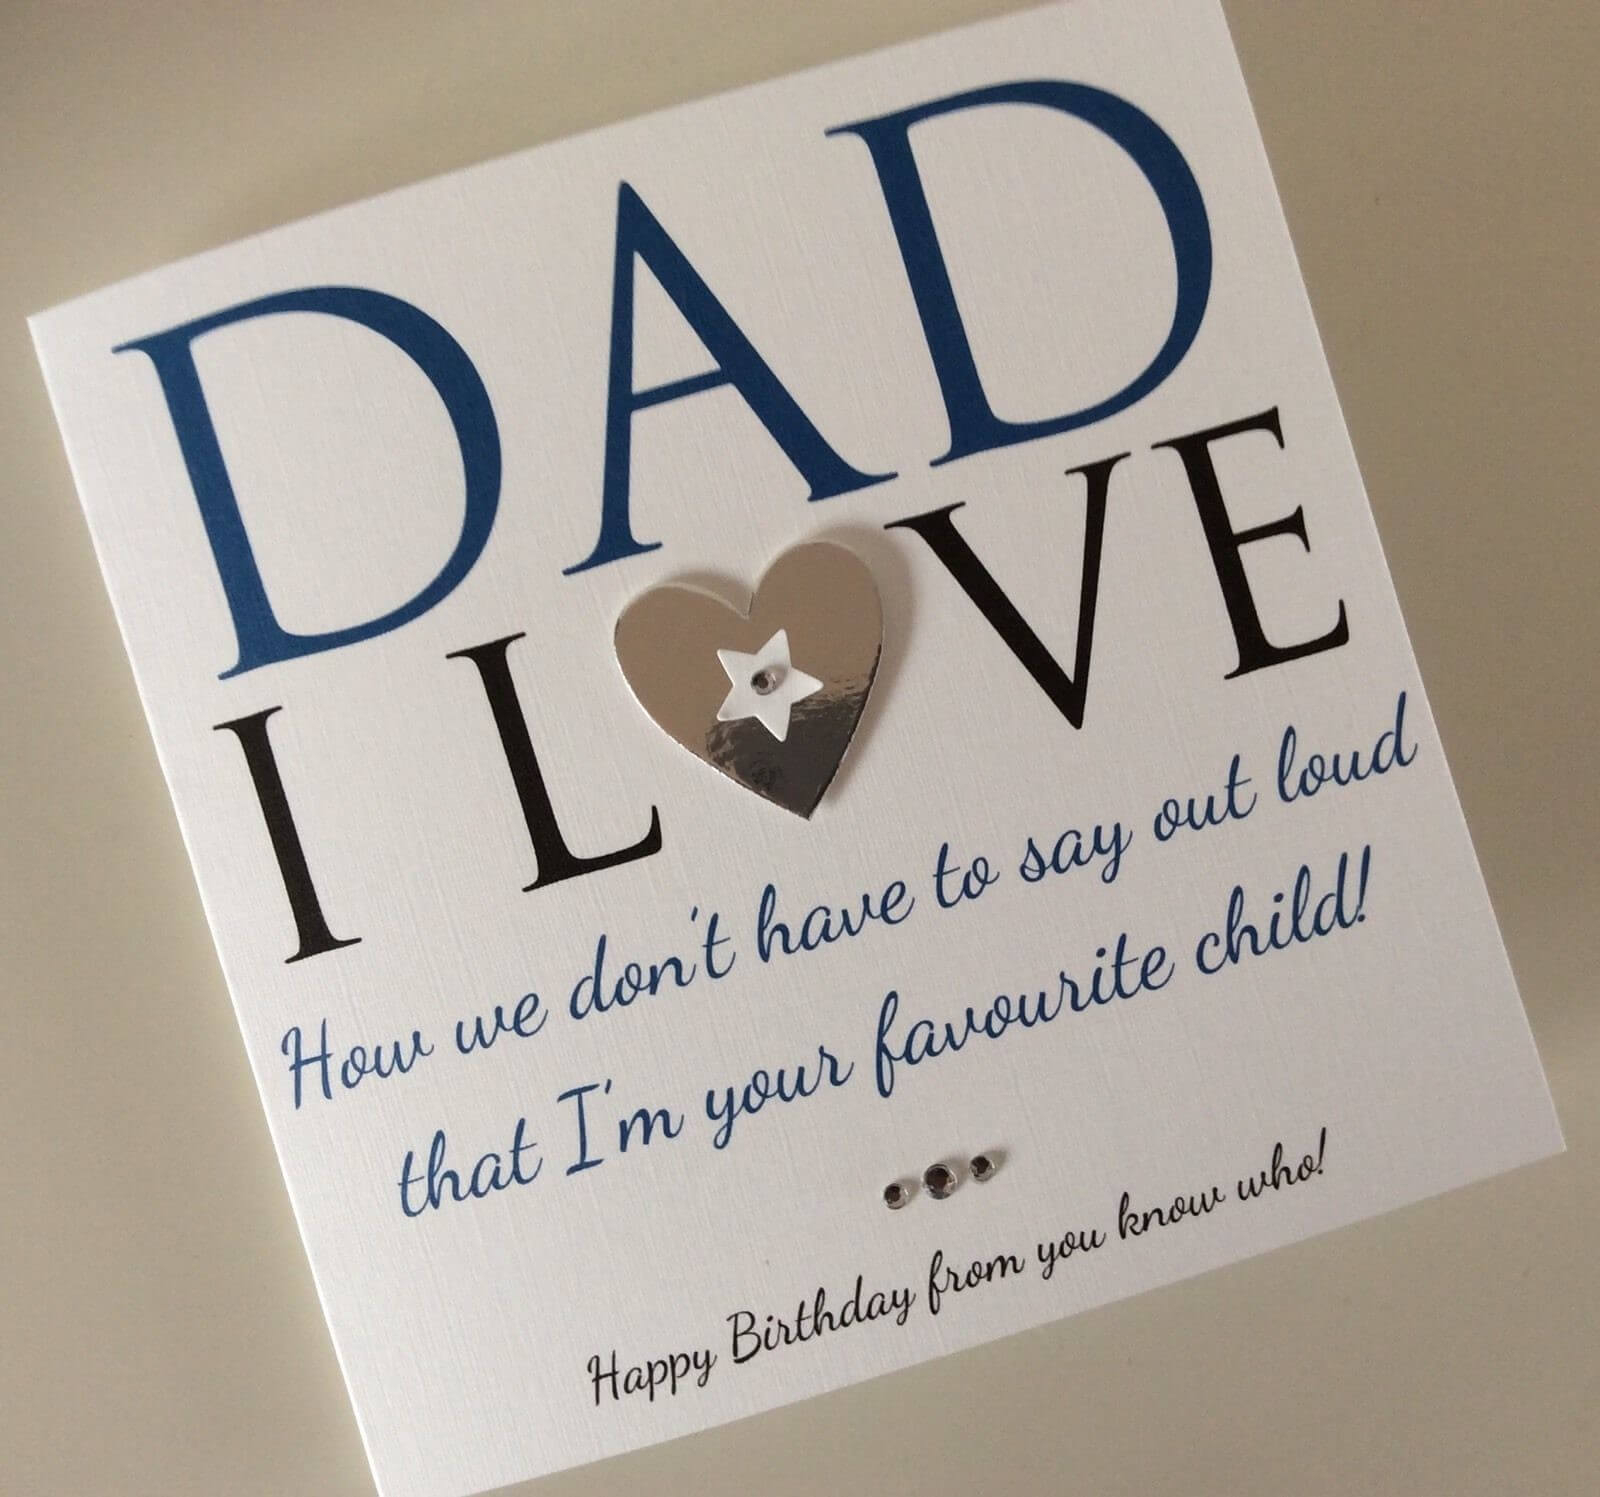 Good Card Ideas For Dads Birthday Birthday Card Ideas For Dad Examples And Forms